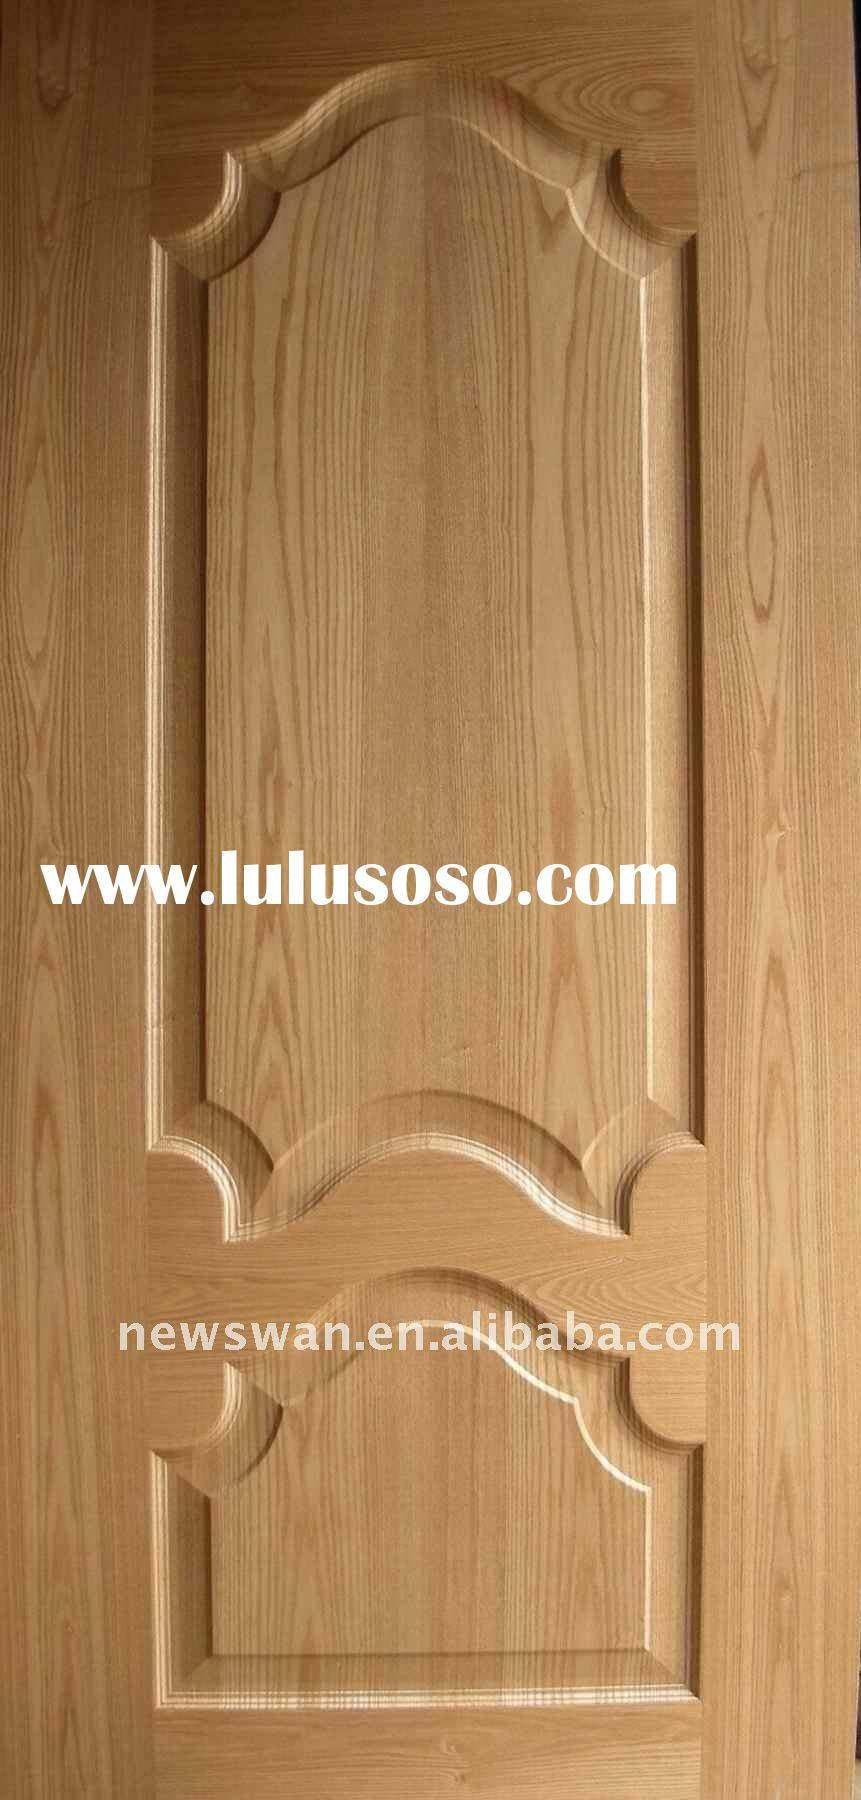 Oak Wood Veneer Door Skins